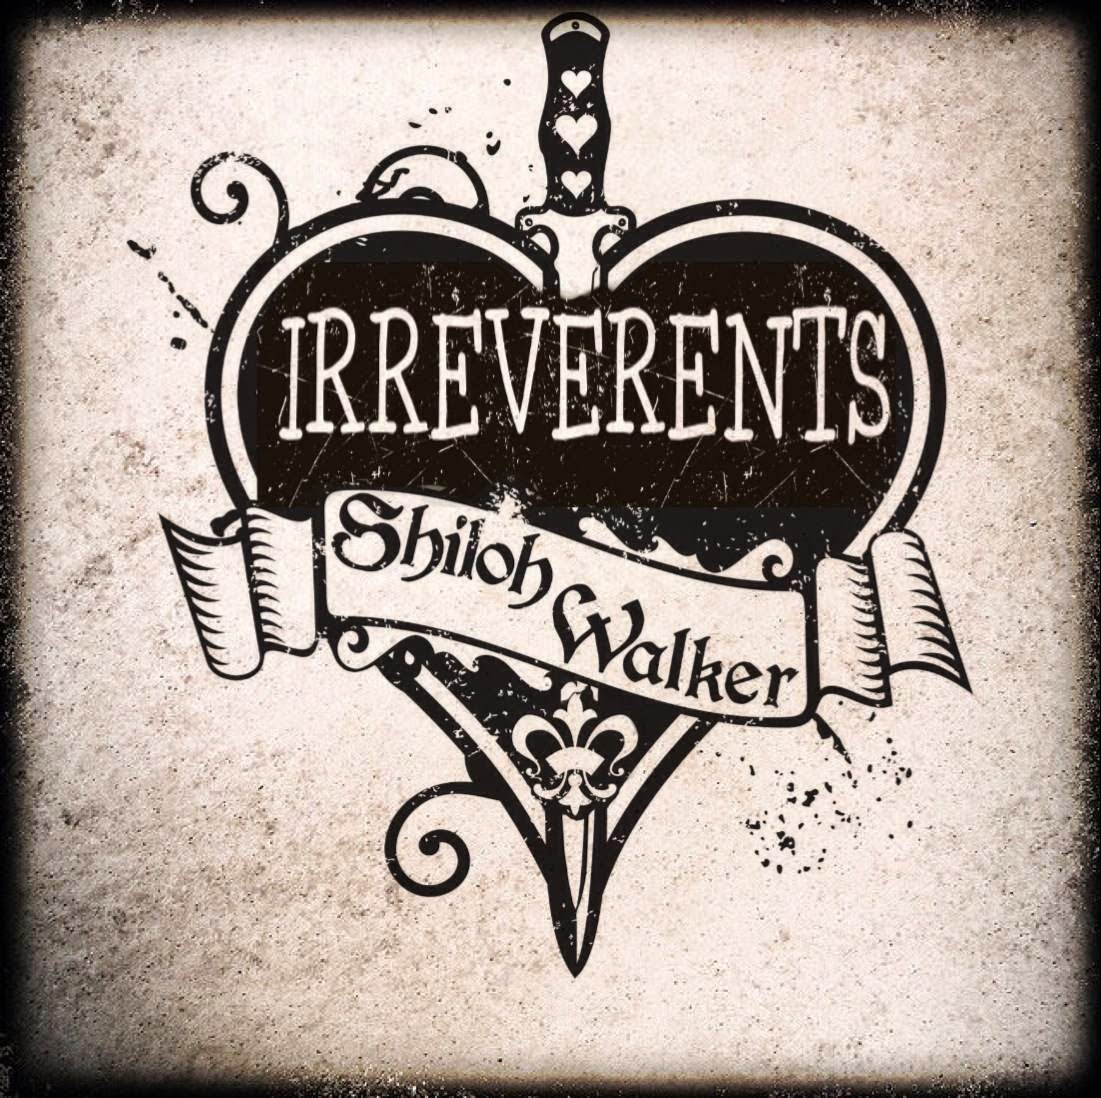 Shiloh Walker's Street Team